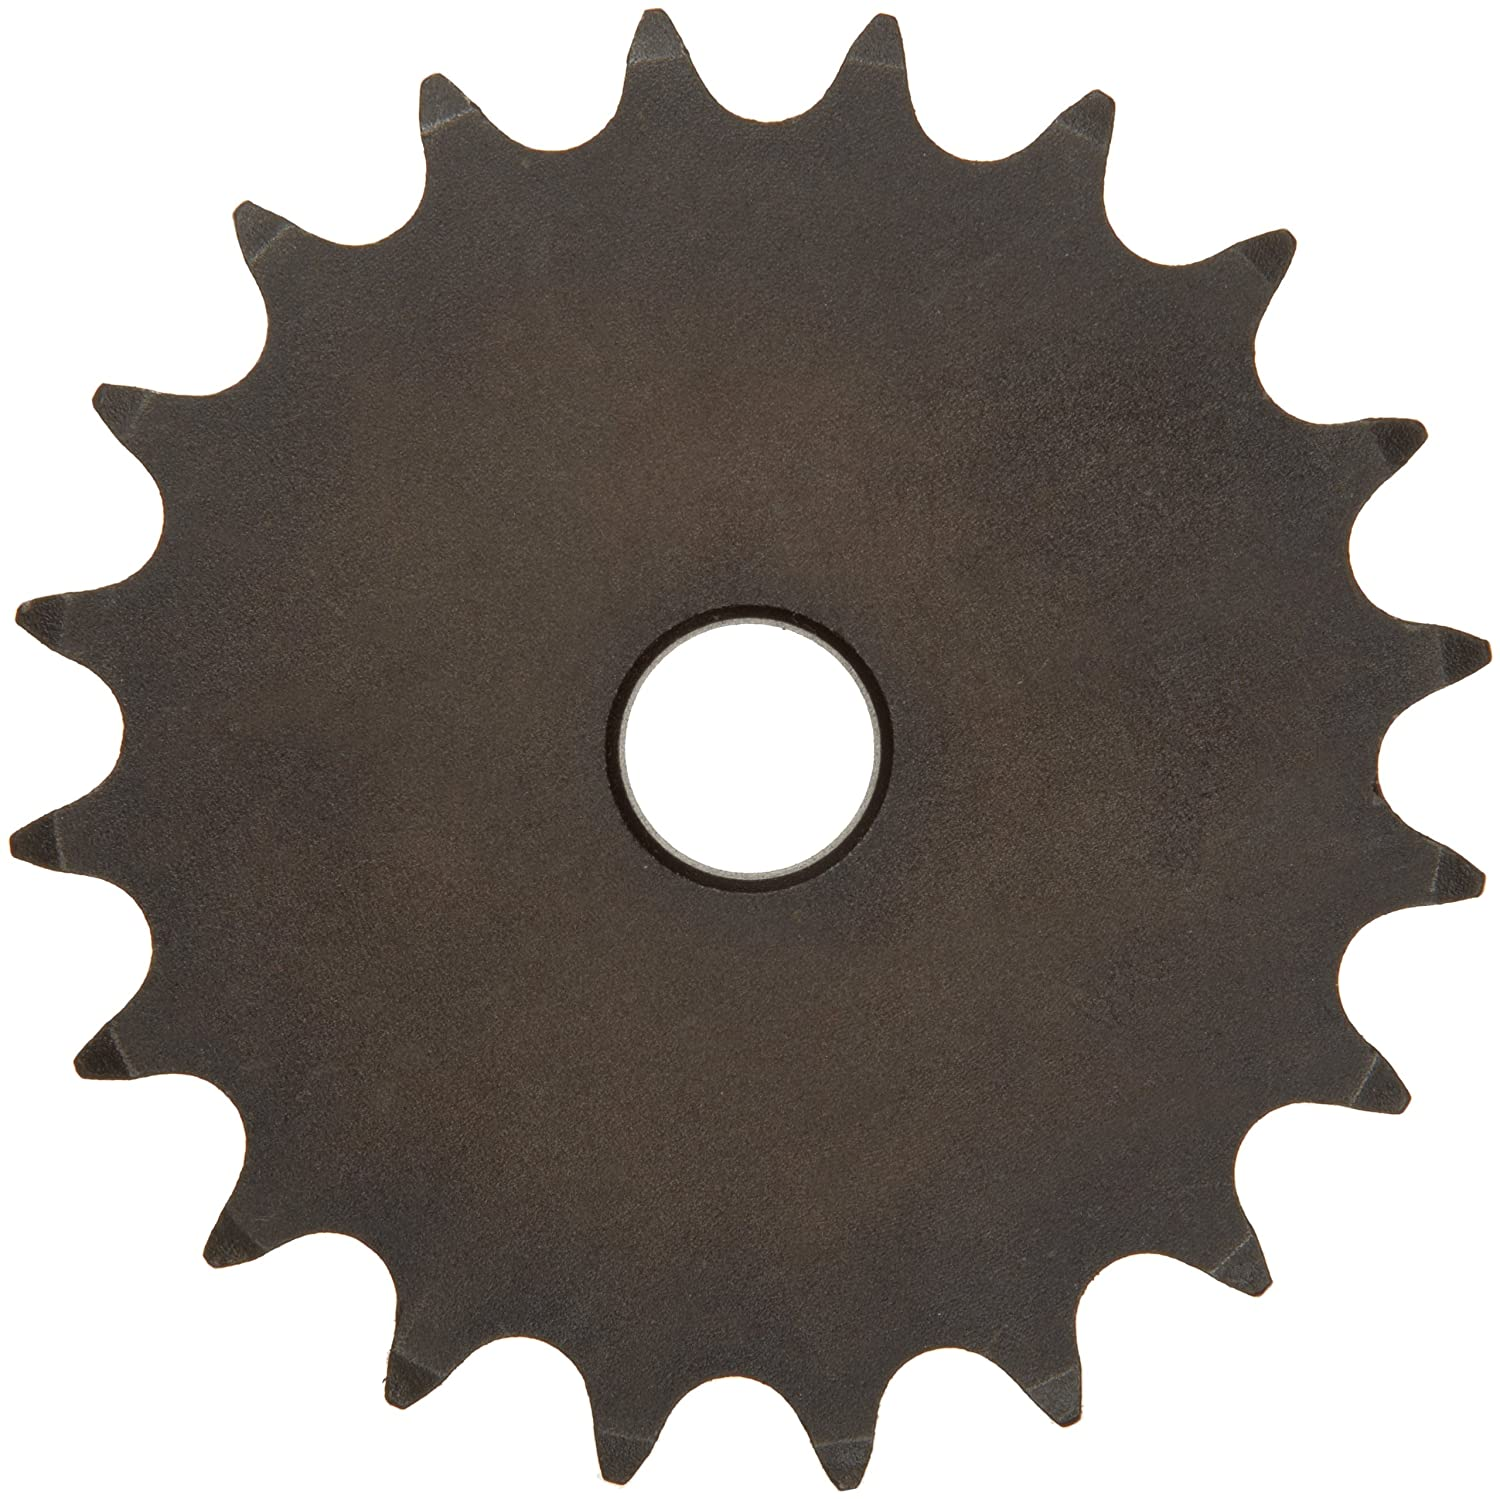 Single Strand 2.504 OD Martin Roller Chain Sprocket 0.625 Pitch Type B Hub 1.75 Hub Dia. 11 Teeth 0.343 Width 50 Chain Size Reboreable 0.625 Bore Dia.